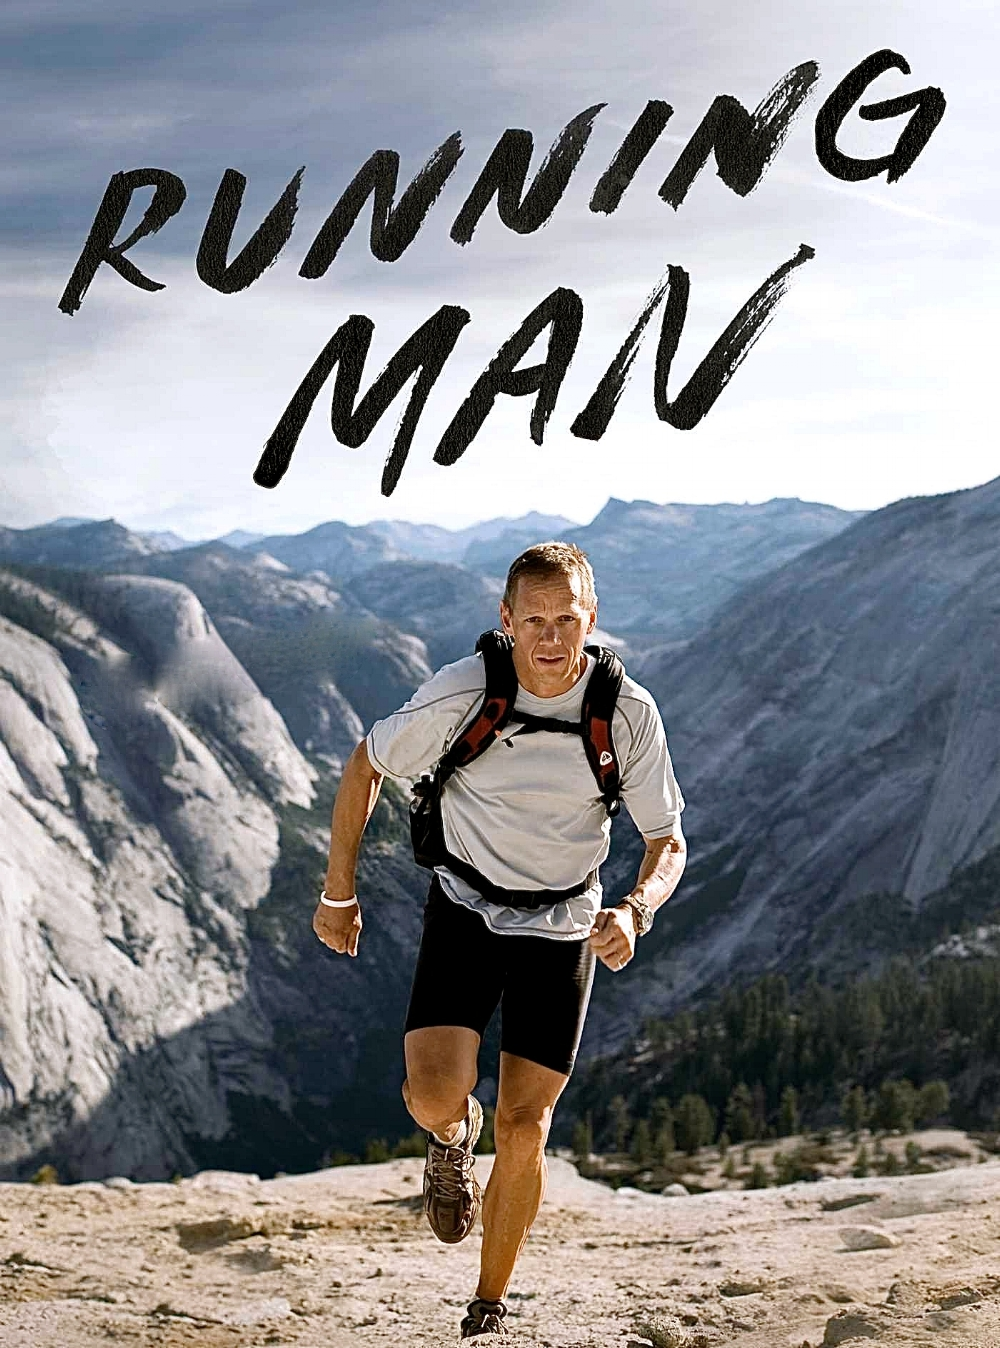 Running Man: A Memoir By: Charlie Engle Available in hardcover, e-book, and audio